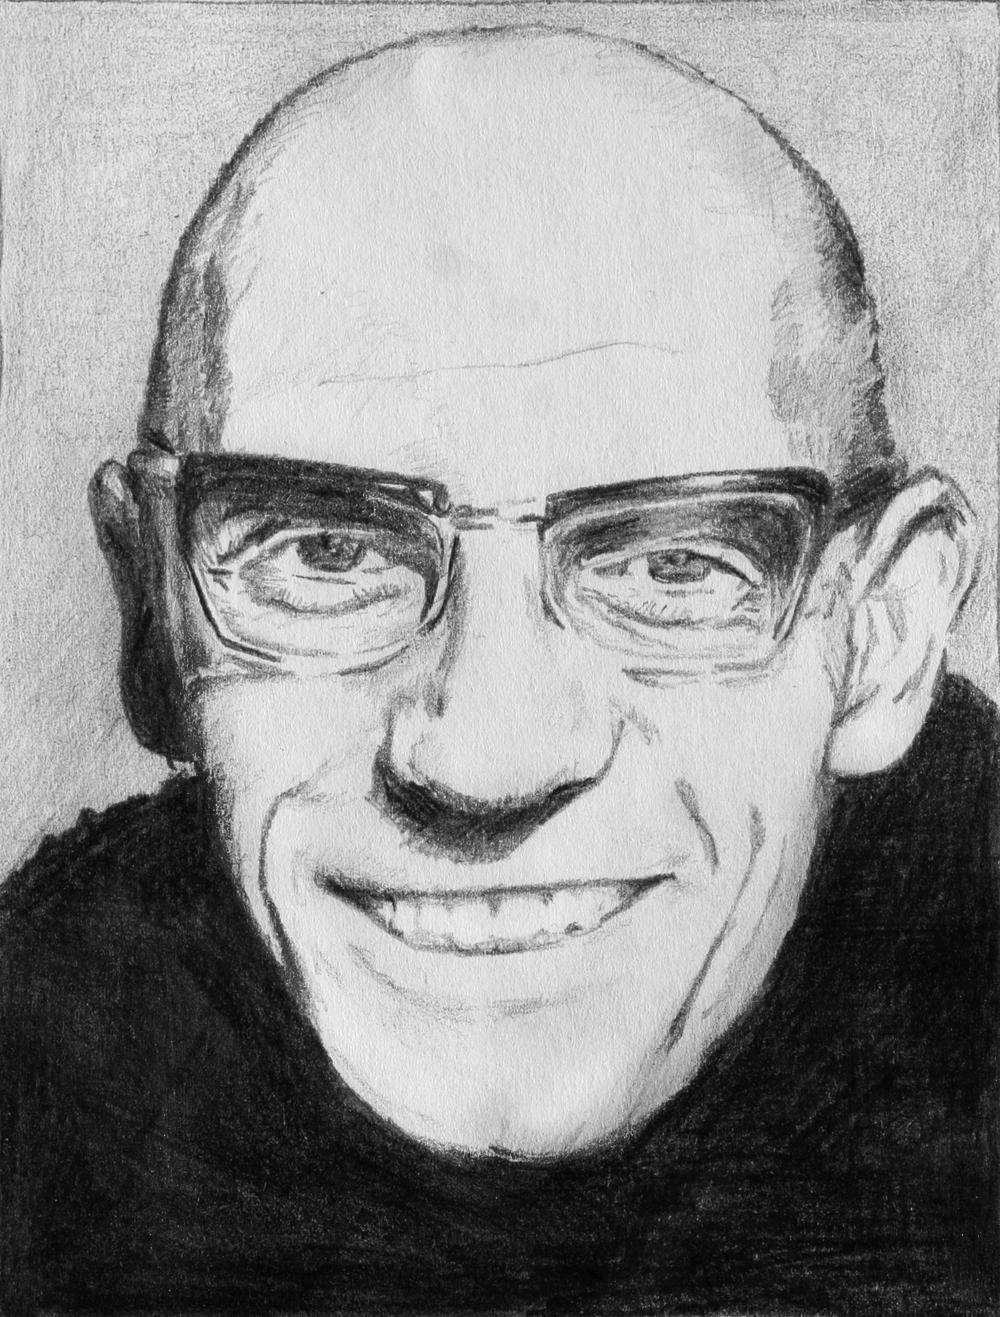 biography of michel foucault Michel foucault was born paul-michel foucault in the provincial town of poitiers, france, in 1926 both his father and grandfather were physicians and taught at the medical school in poitiers he was educated at two schools in his hometown and for a year at a parisian lycée, where he first encountered the hegelian scholar jean hyppolite.